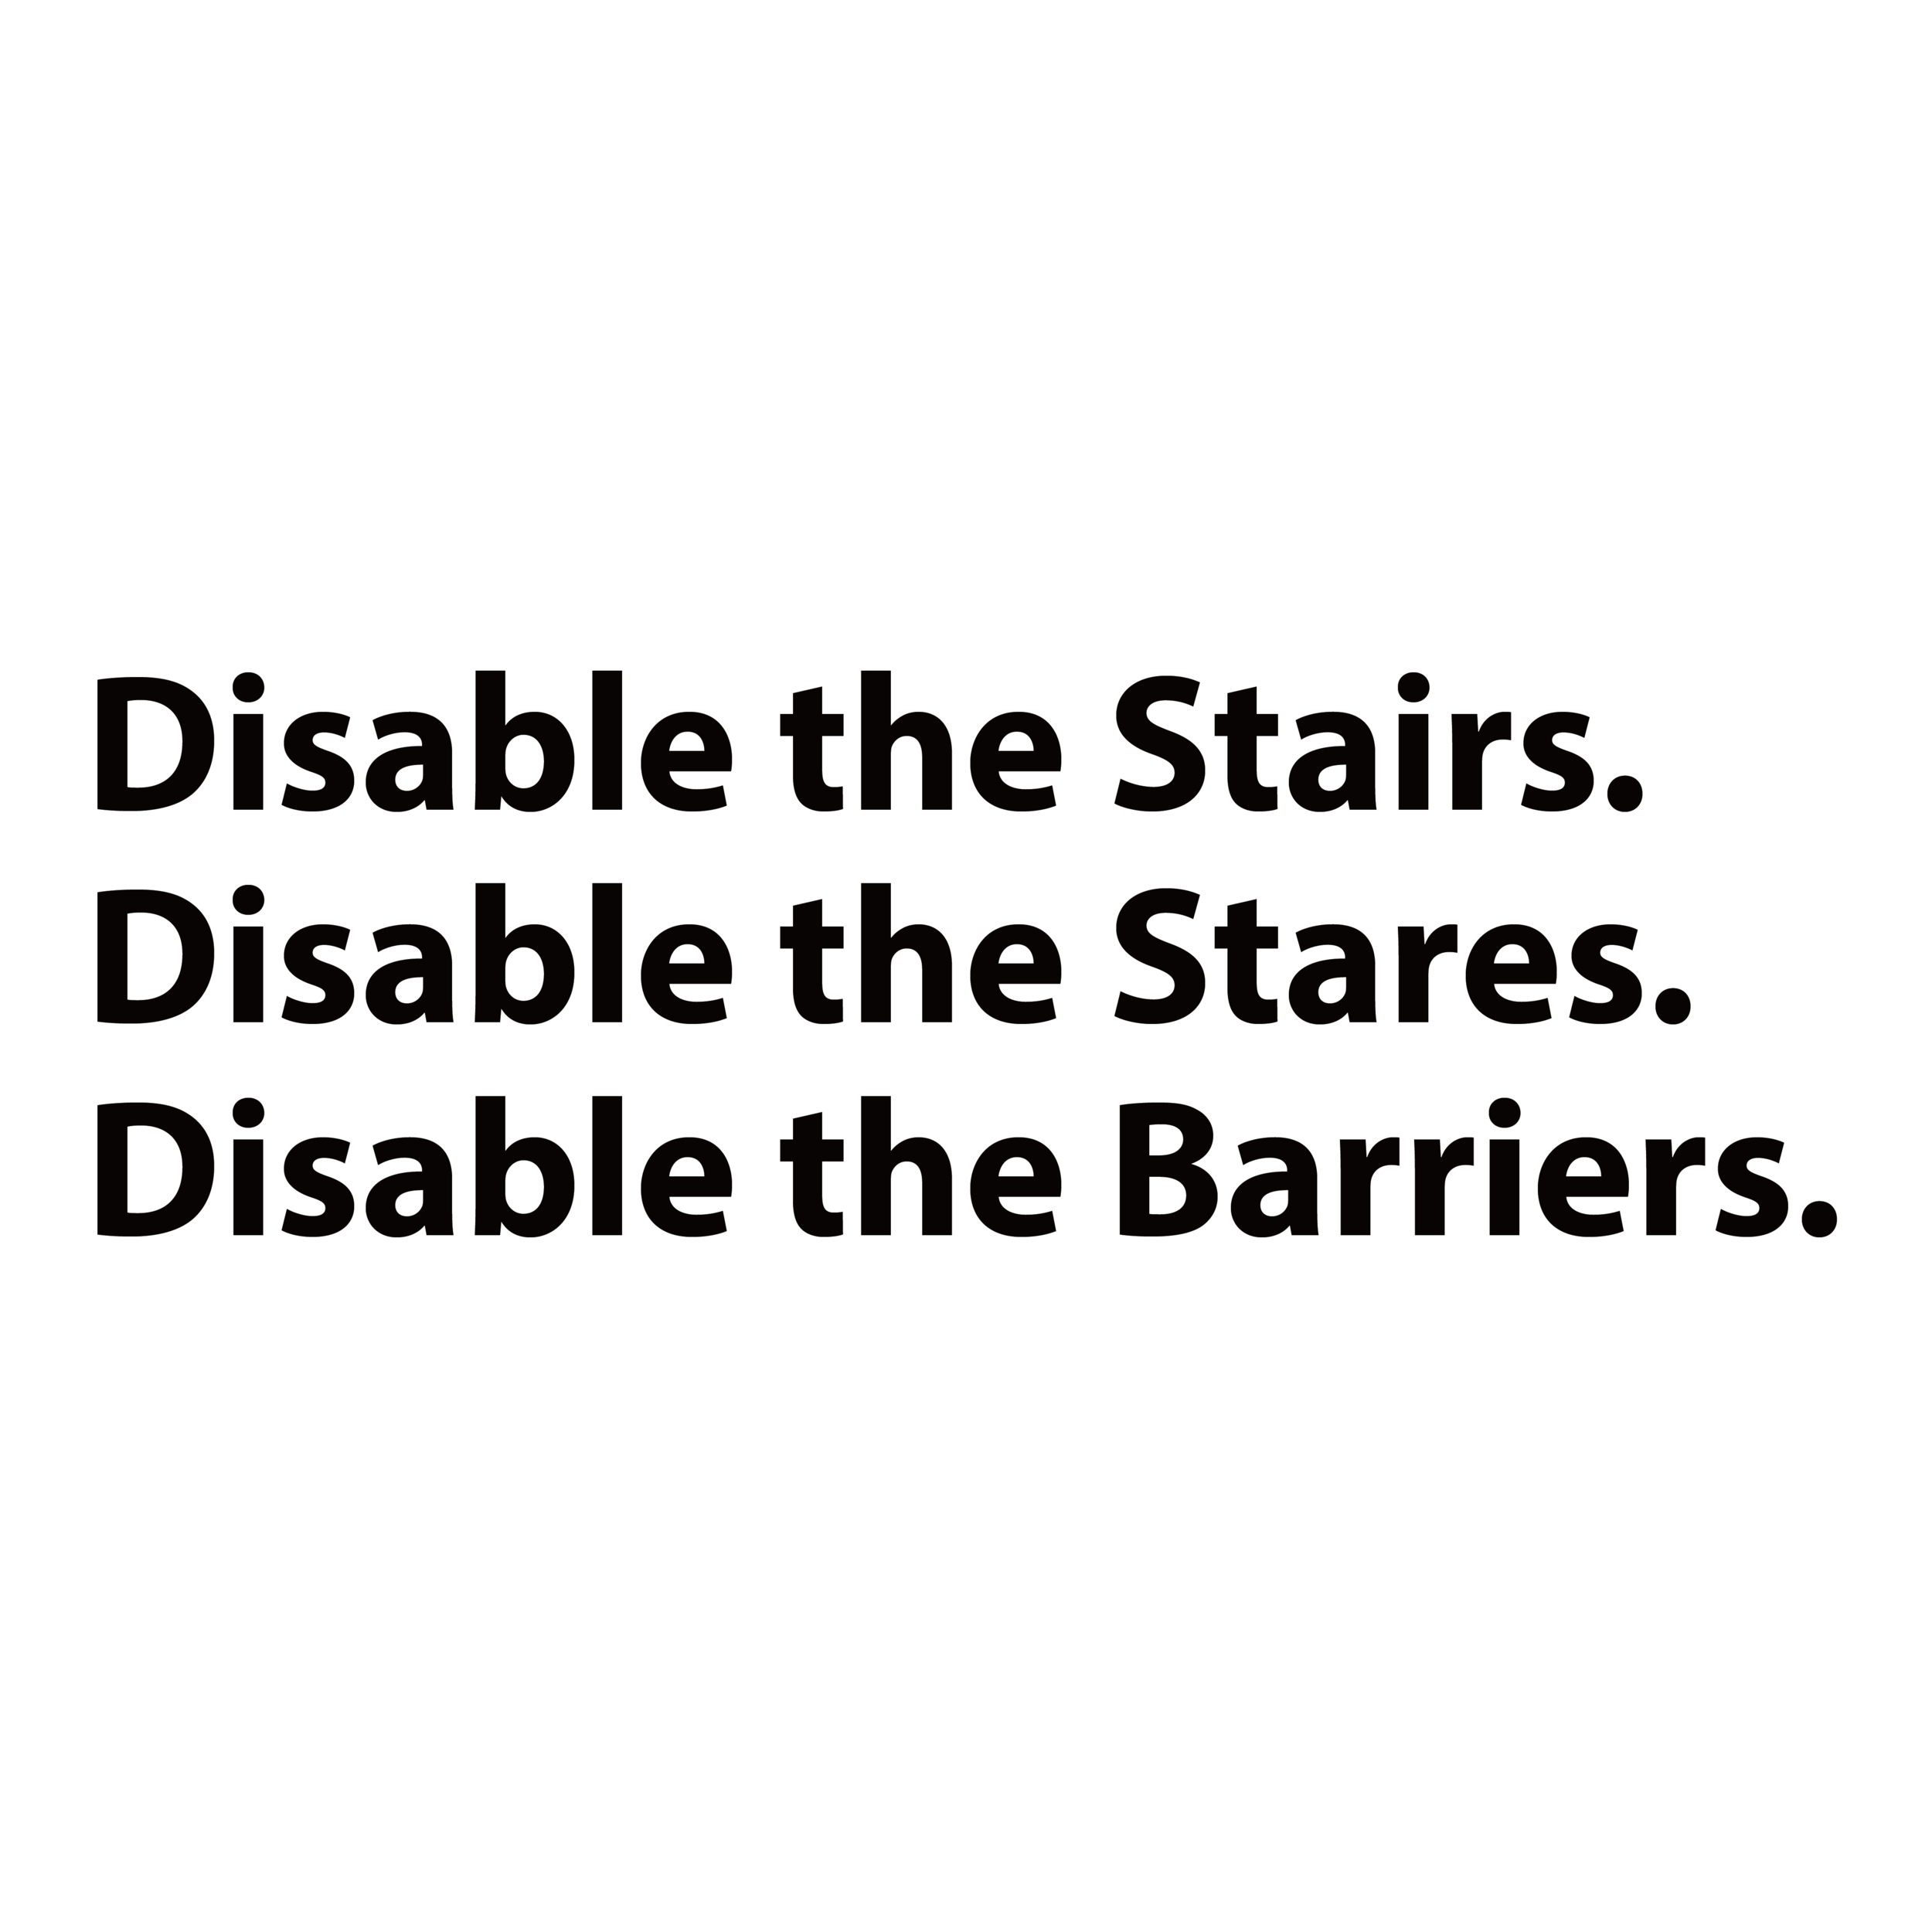 Disable the Barriers logo tagline.